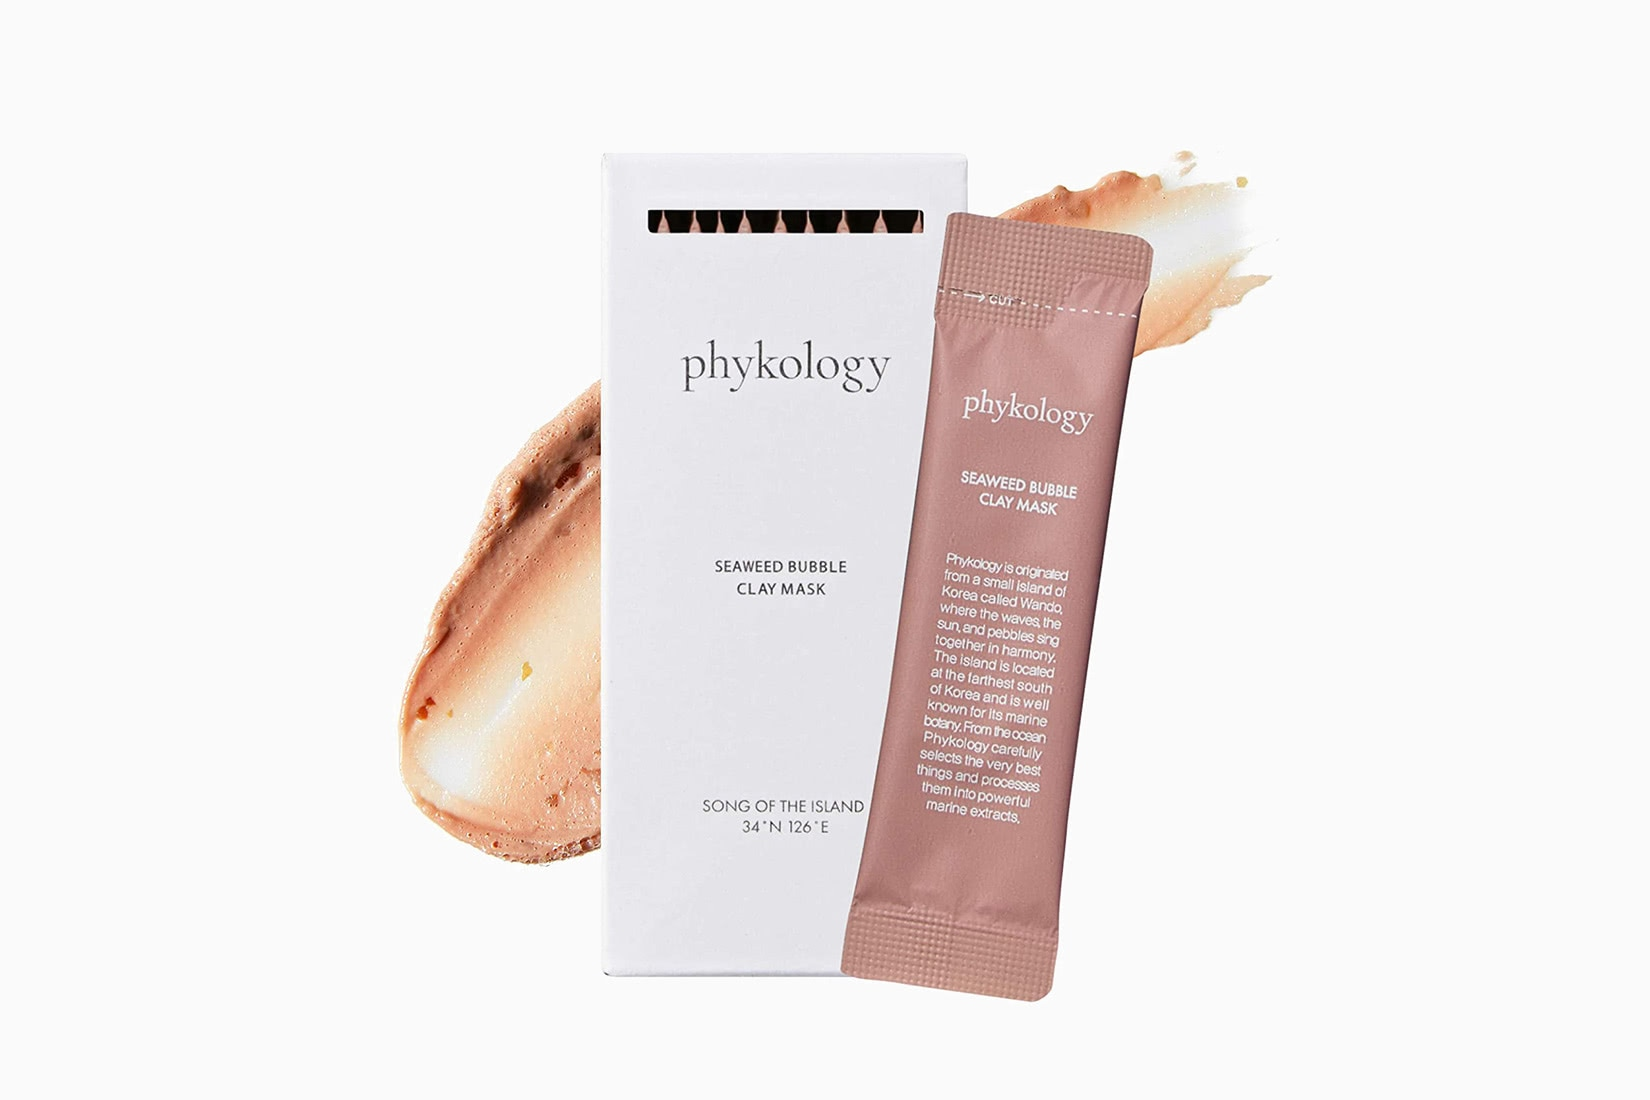 best natural organic beauty skincare phykology seaweed mask - Luxe Digital